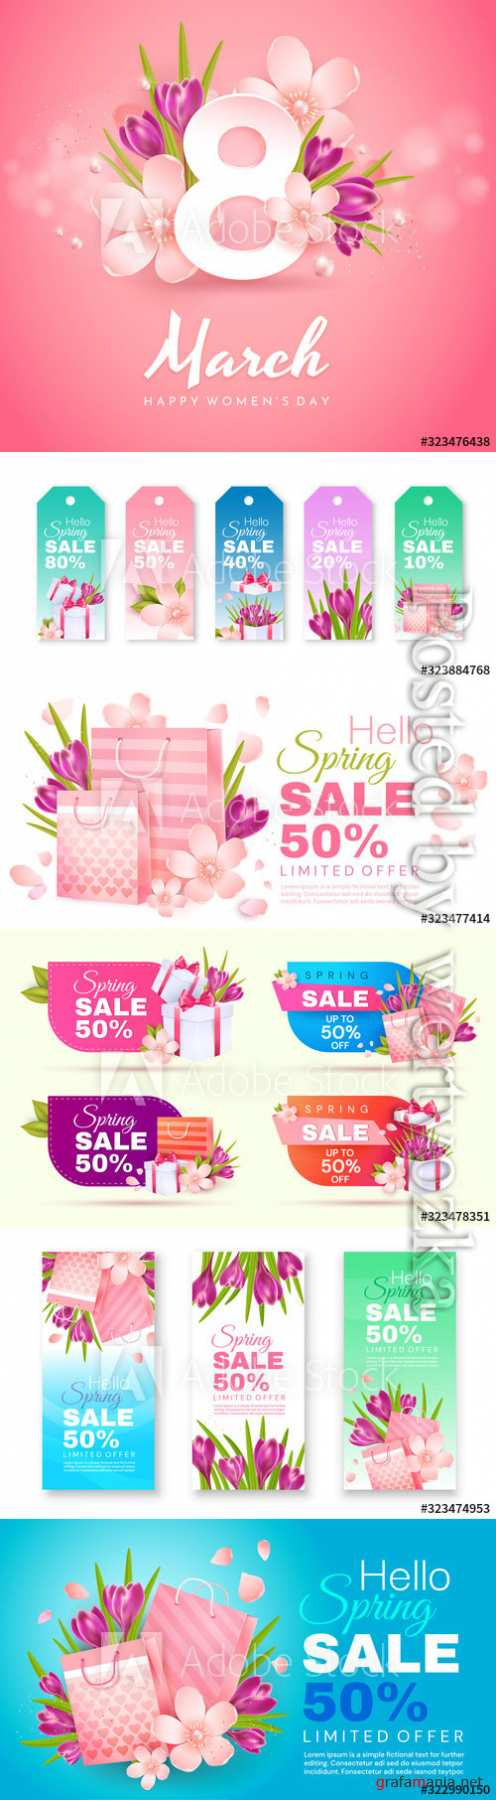 Greeting card for Women's Day, spring sale banners